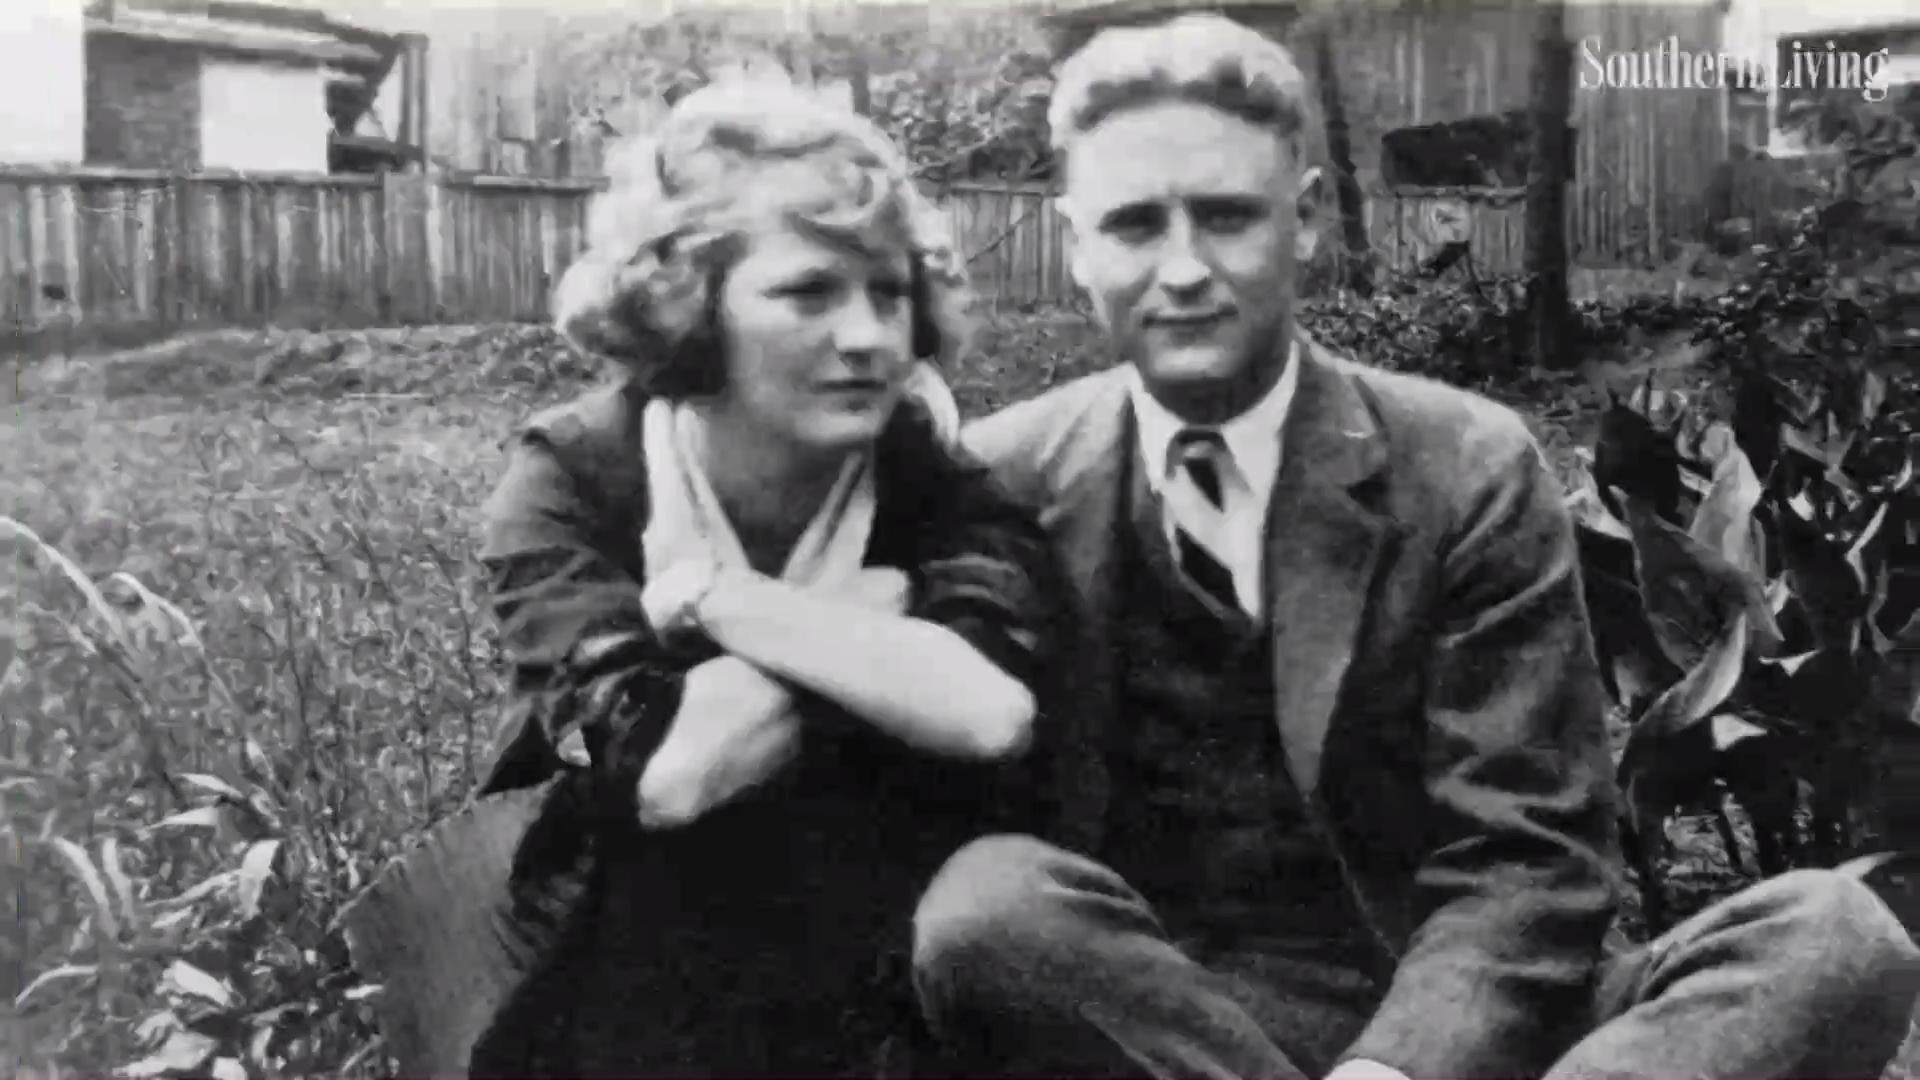 F. Scott and Zelda Fitzgerald's Home Is Available to Rent on AirBnB